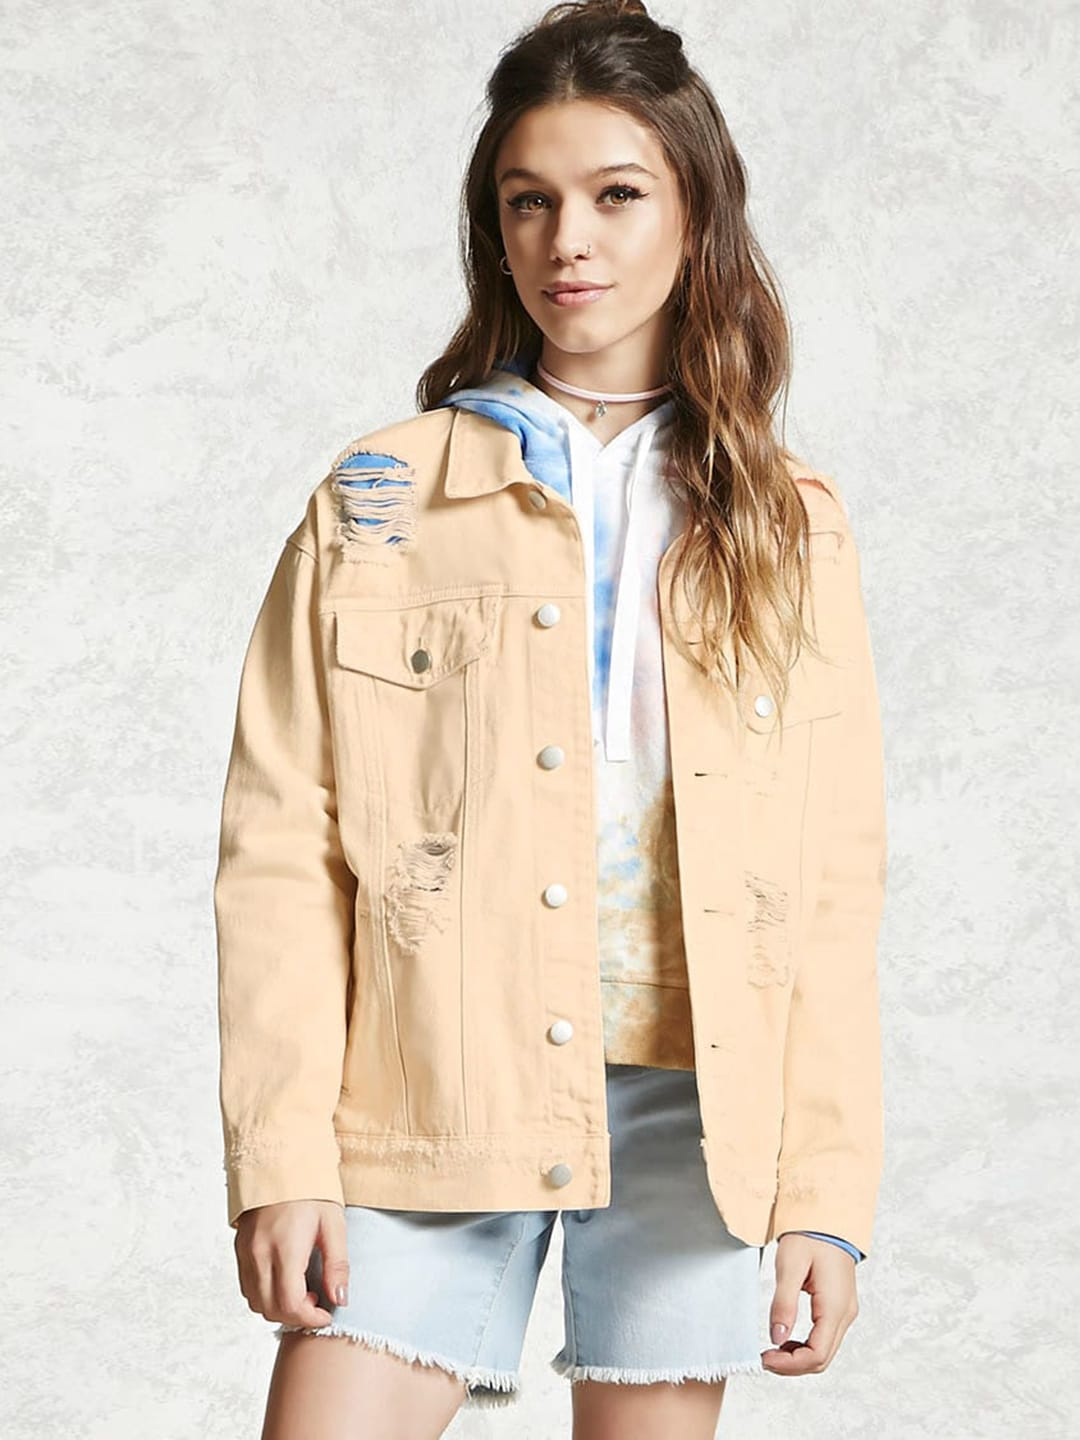 7356a38d1c7 Ss18 Launch Women Color Denim_661814 - Buy Ss18 Launch Women Color  Denim_661814 online in India